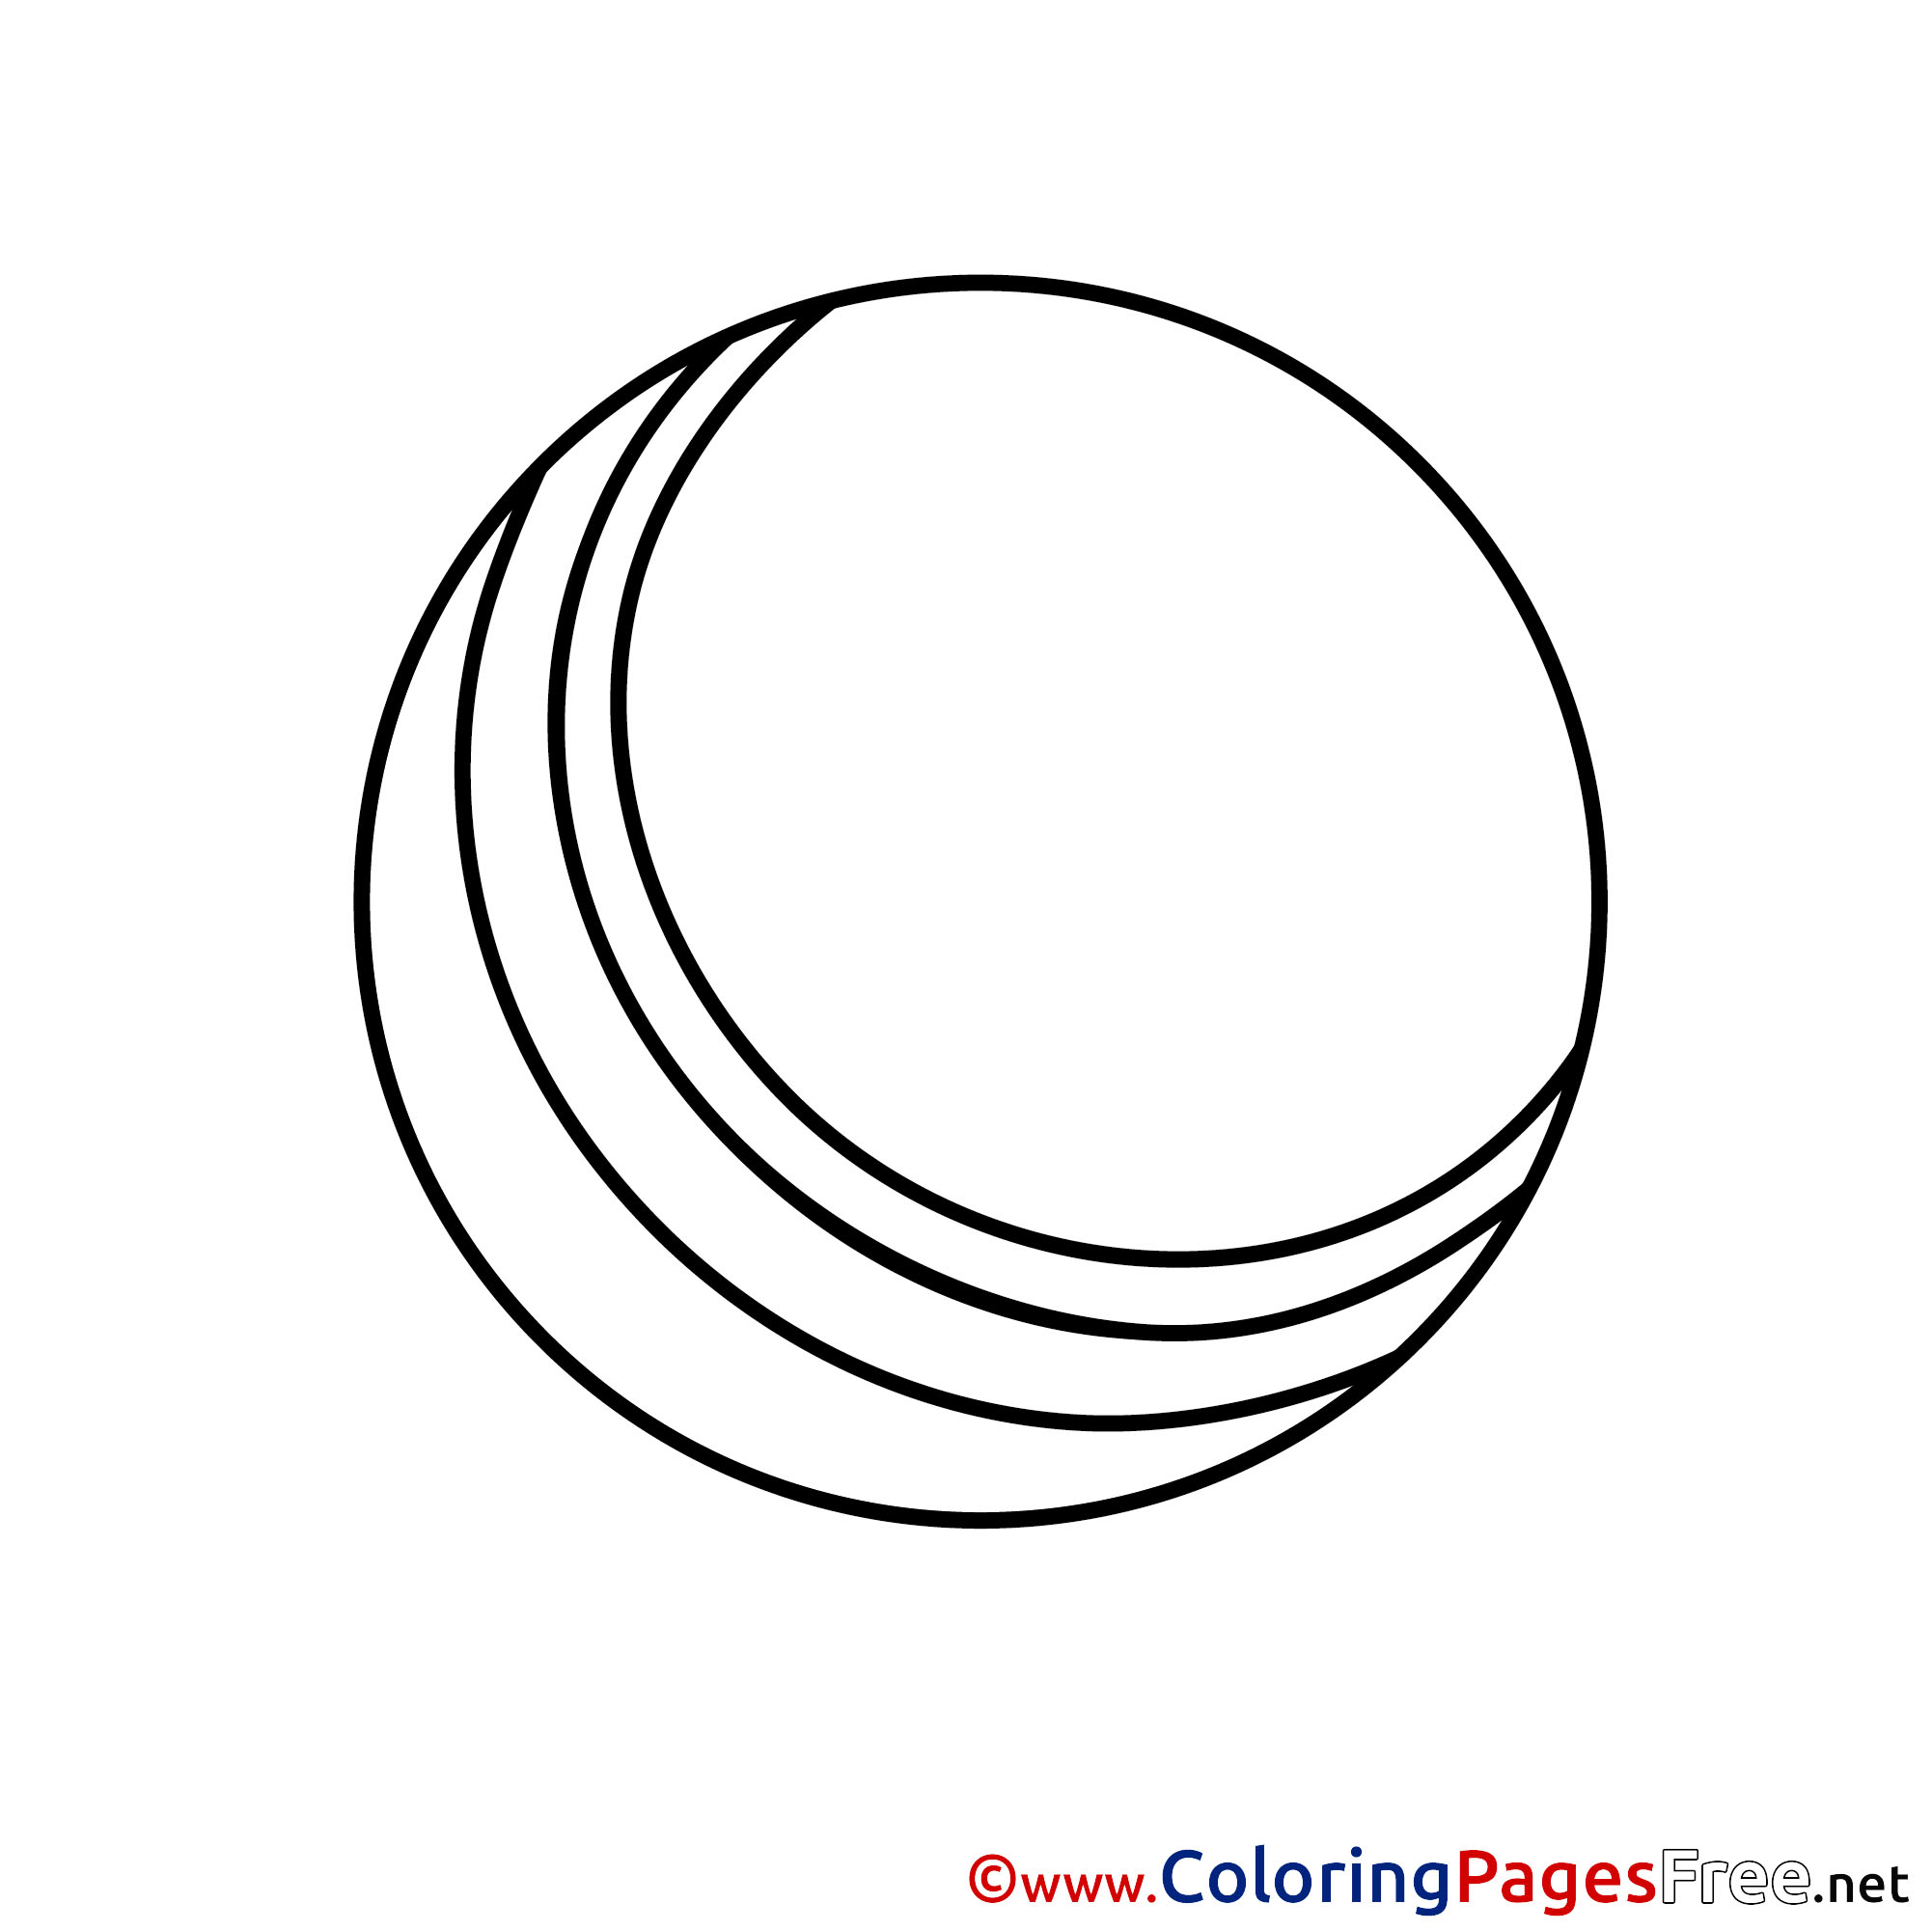 free ball coloring pages - photo #39